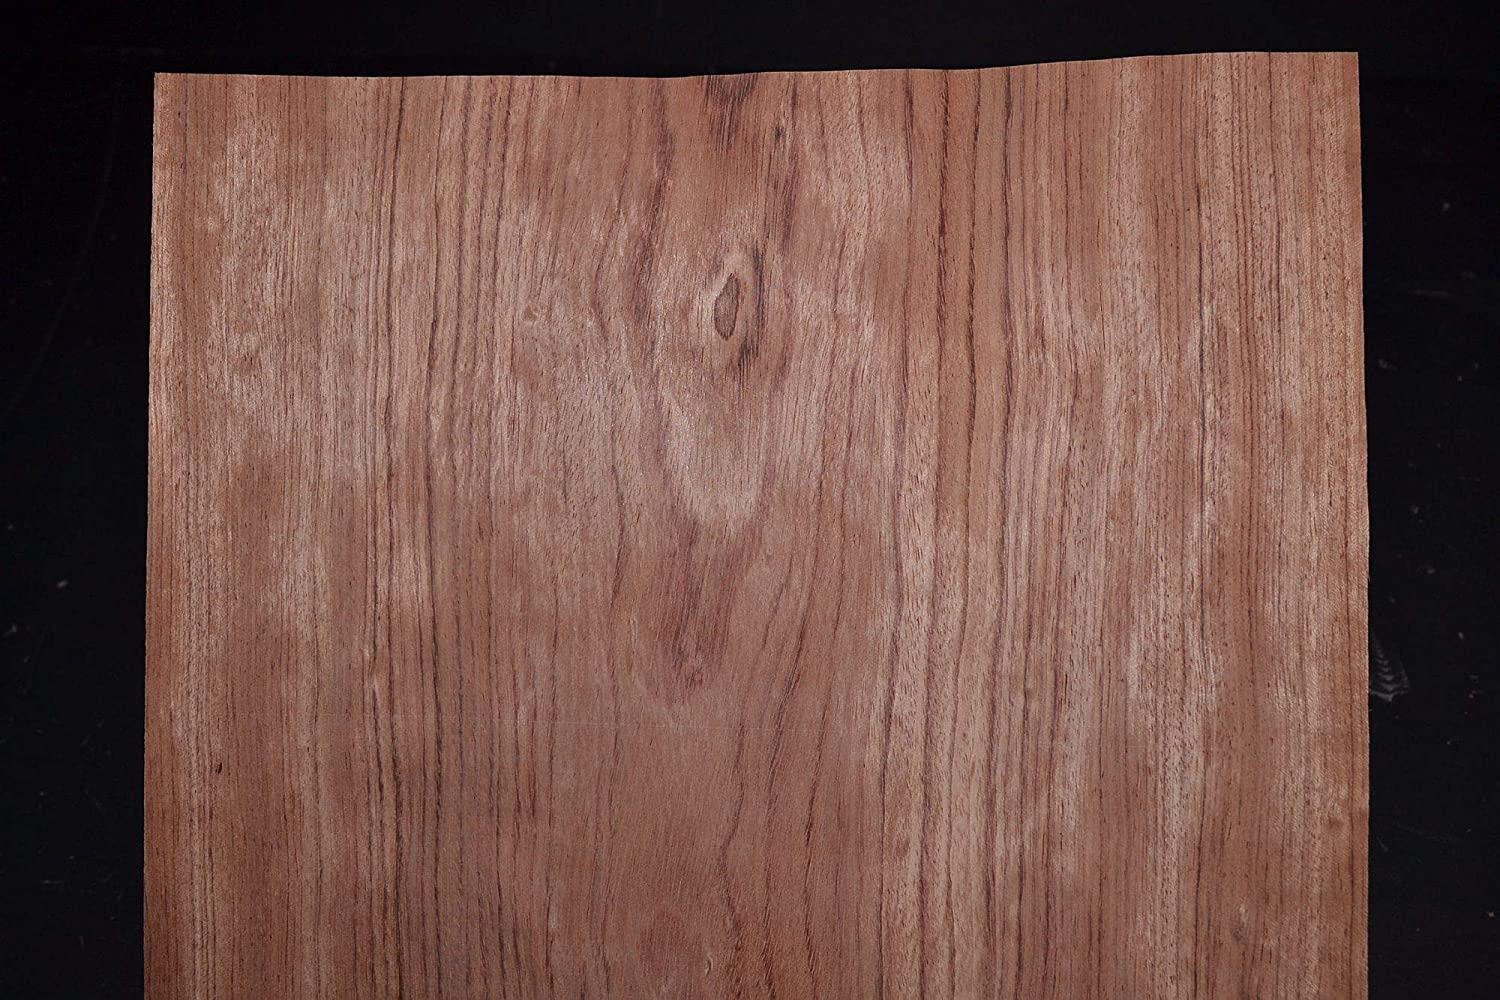 Max 82% OFF Bubinga Raw Wood Veneer Sheets Outlet ☆ Free Shipping 13.5 inches 1 42nd Thick x 44